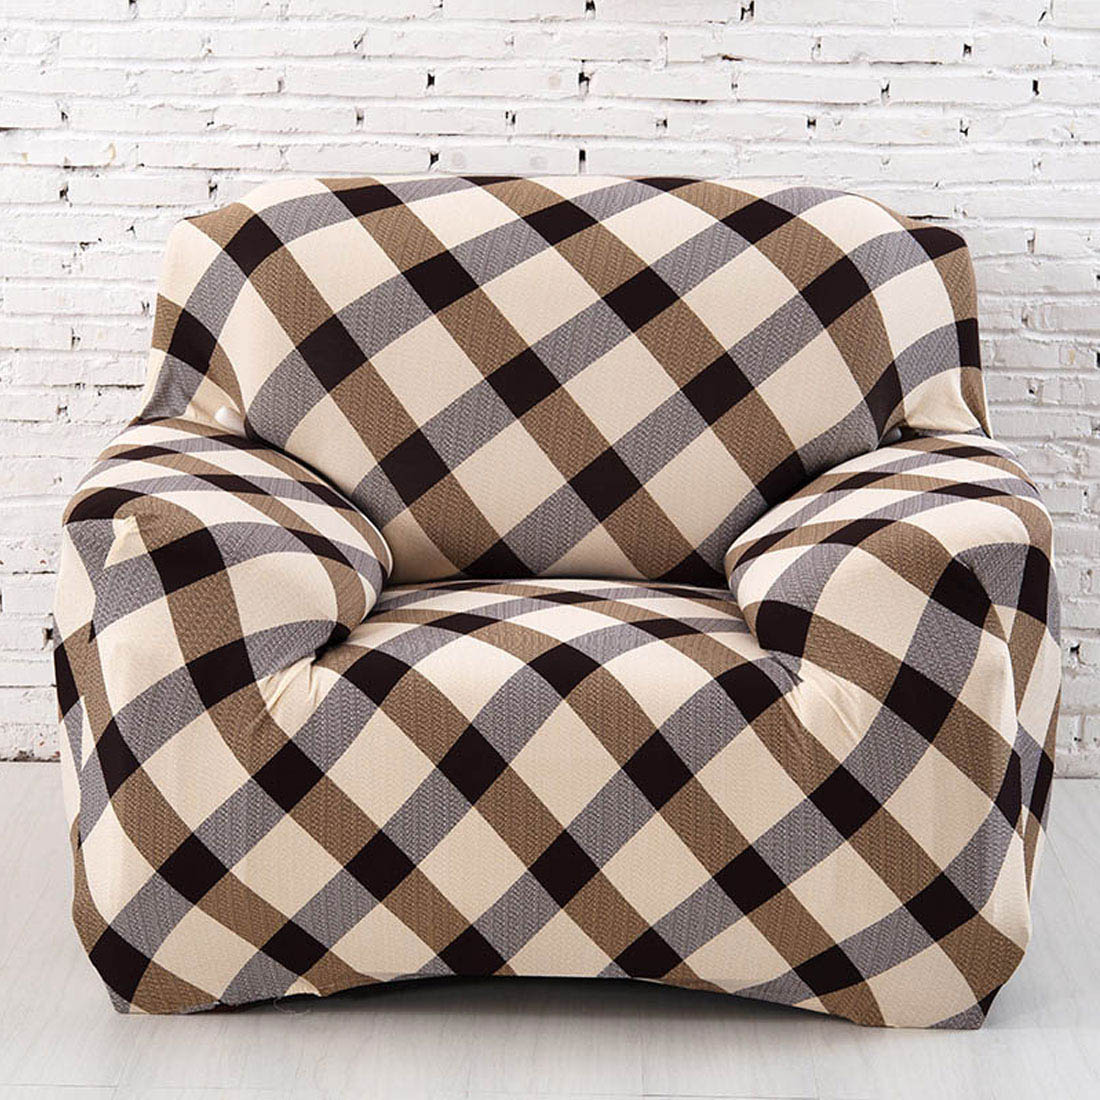 Uxcell Piccocasa Household Polyester Grid Pattern Elastic